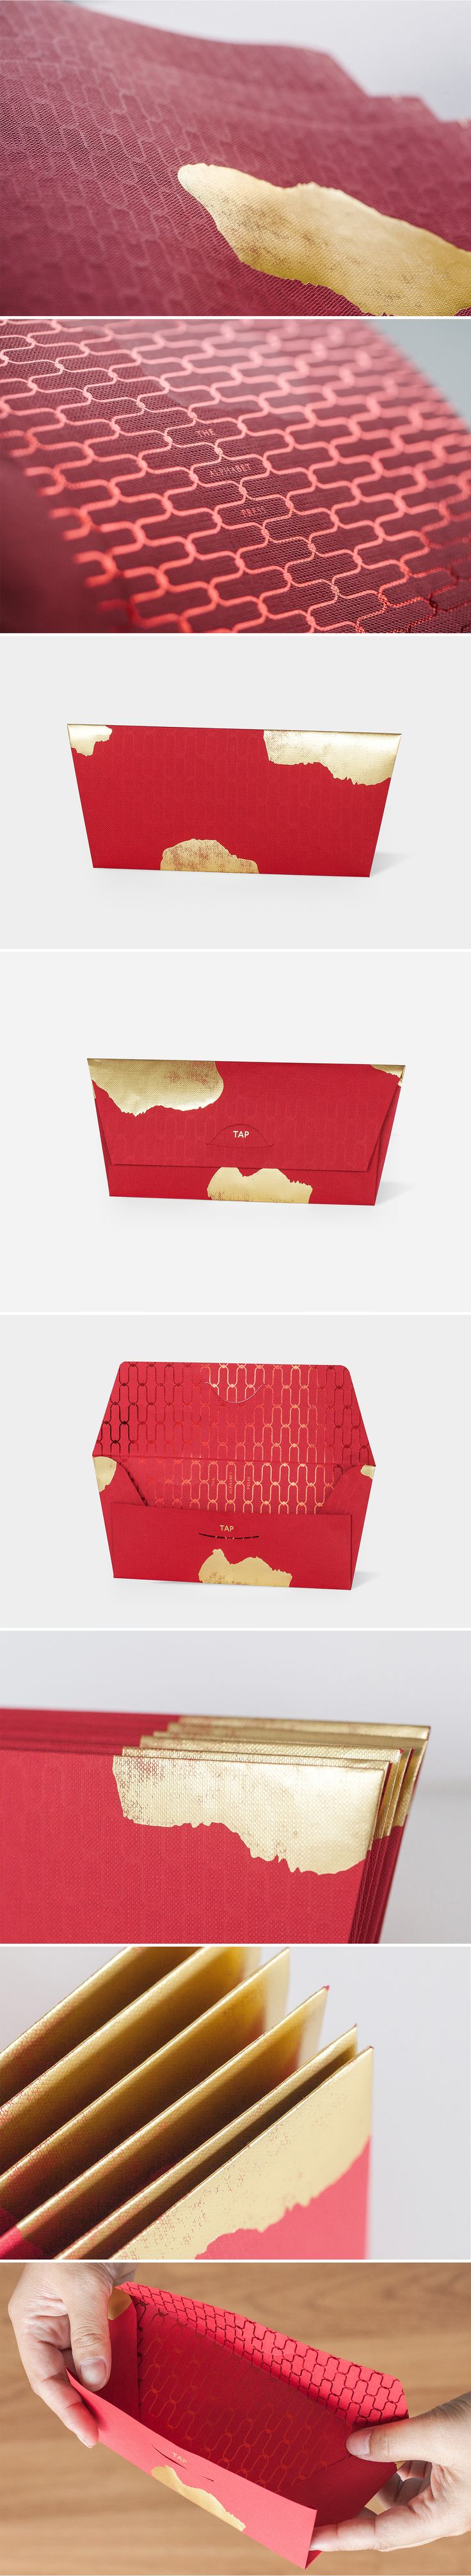 This paper was produced by a British paper mill and is often used as sleeves to hardcover books, which gives it that premium and tactile quality. It is a perfect match (Ang Pow) for foil stamping. The shape of the red packet was inspired by Sycee while the lining was inspired by decorative grills seen in Malaysian old residential areas. www.thealphabetpress.com